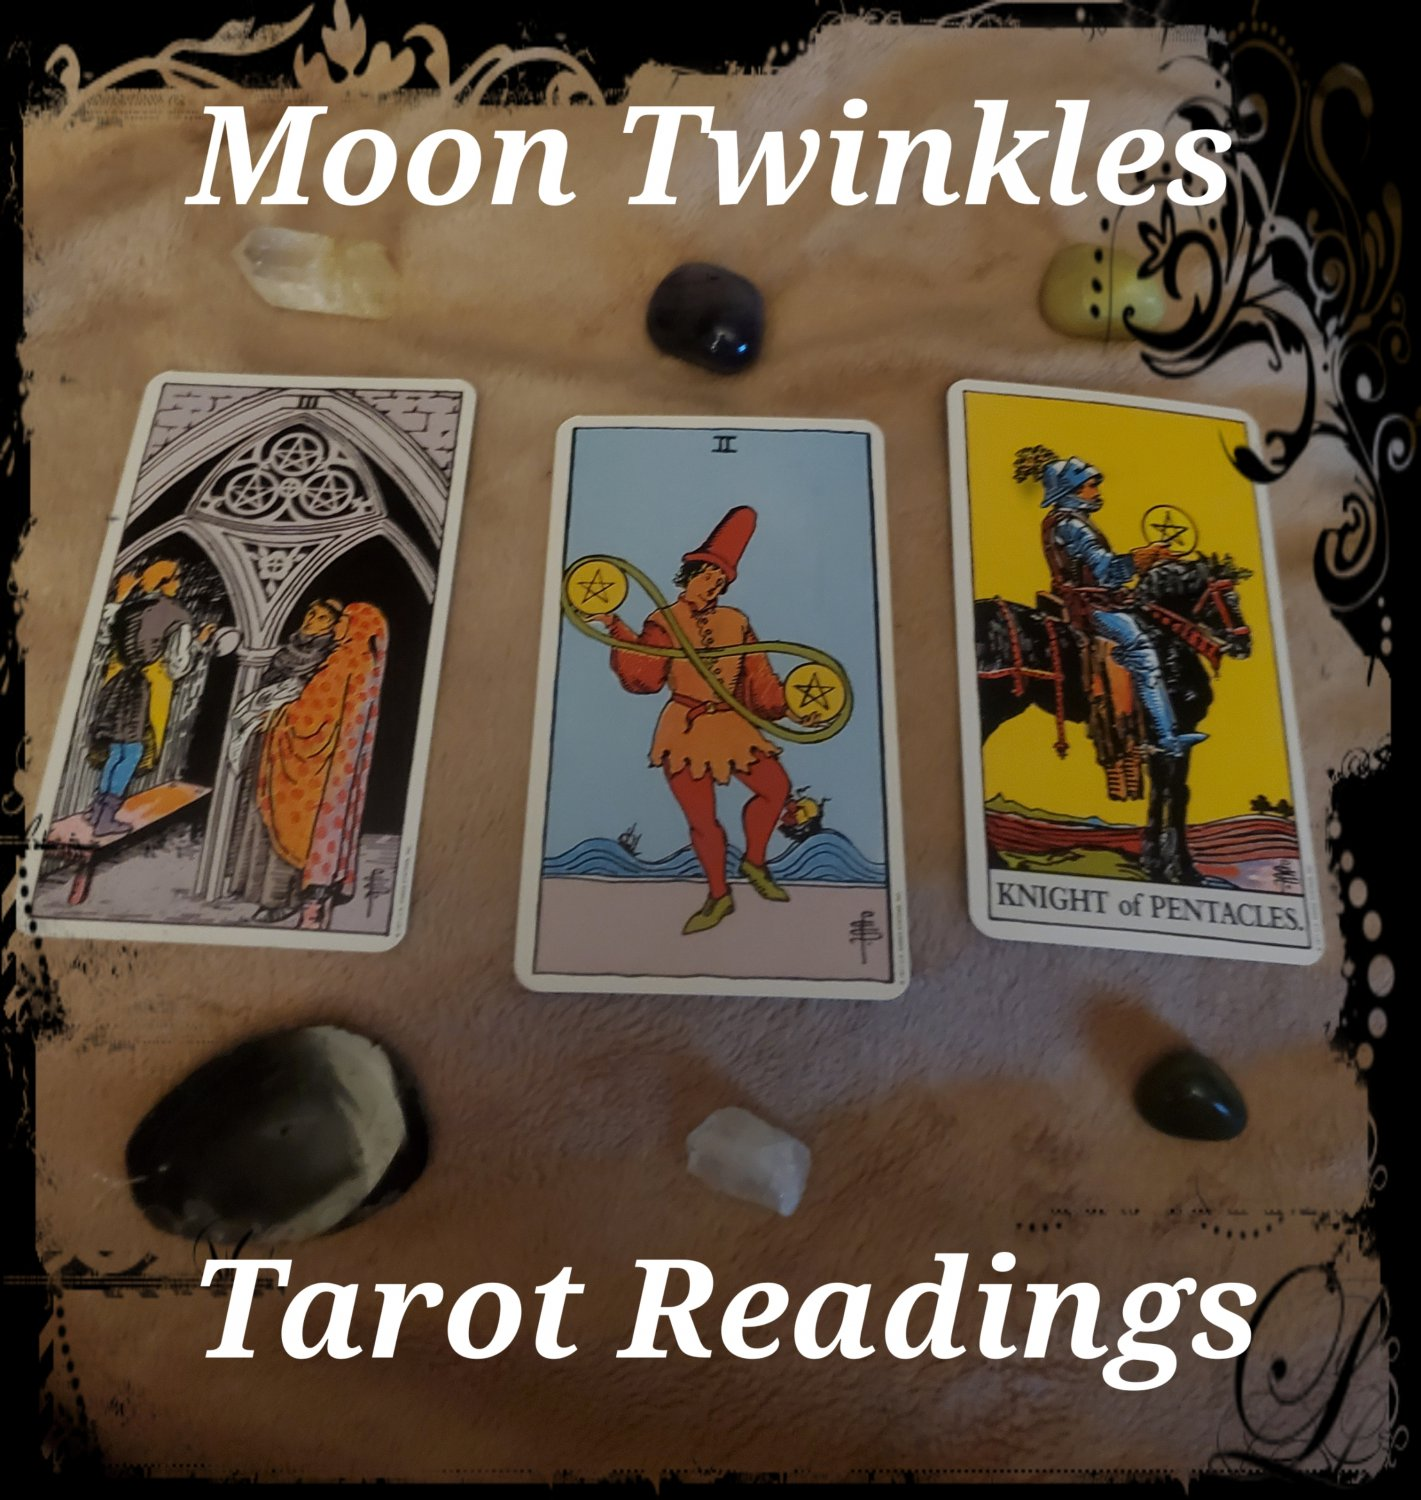 Wh as t message will I receive? Tarot Reading